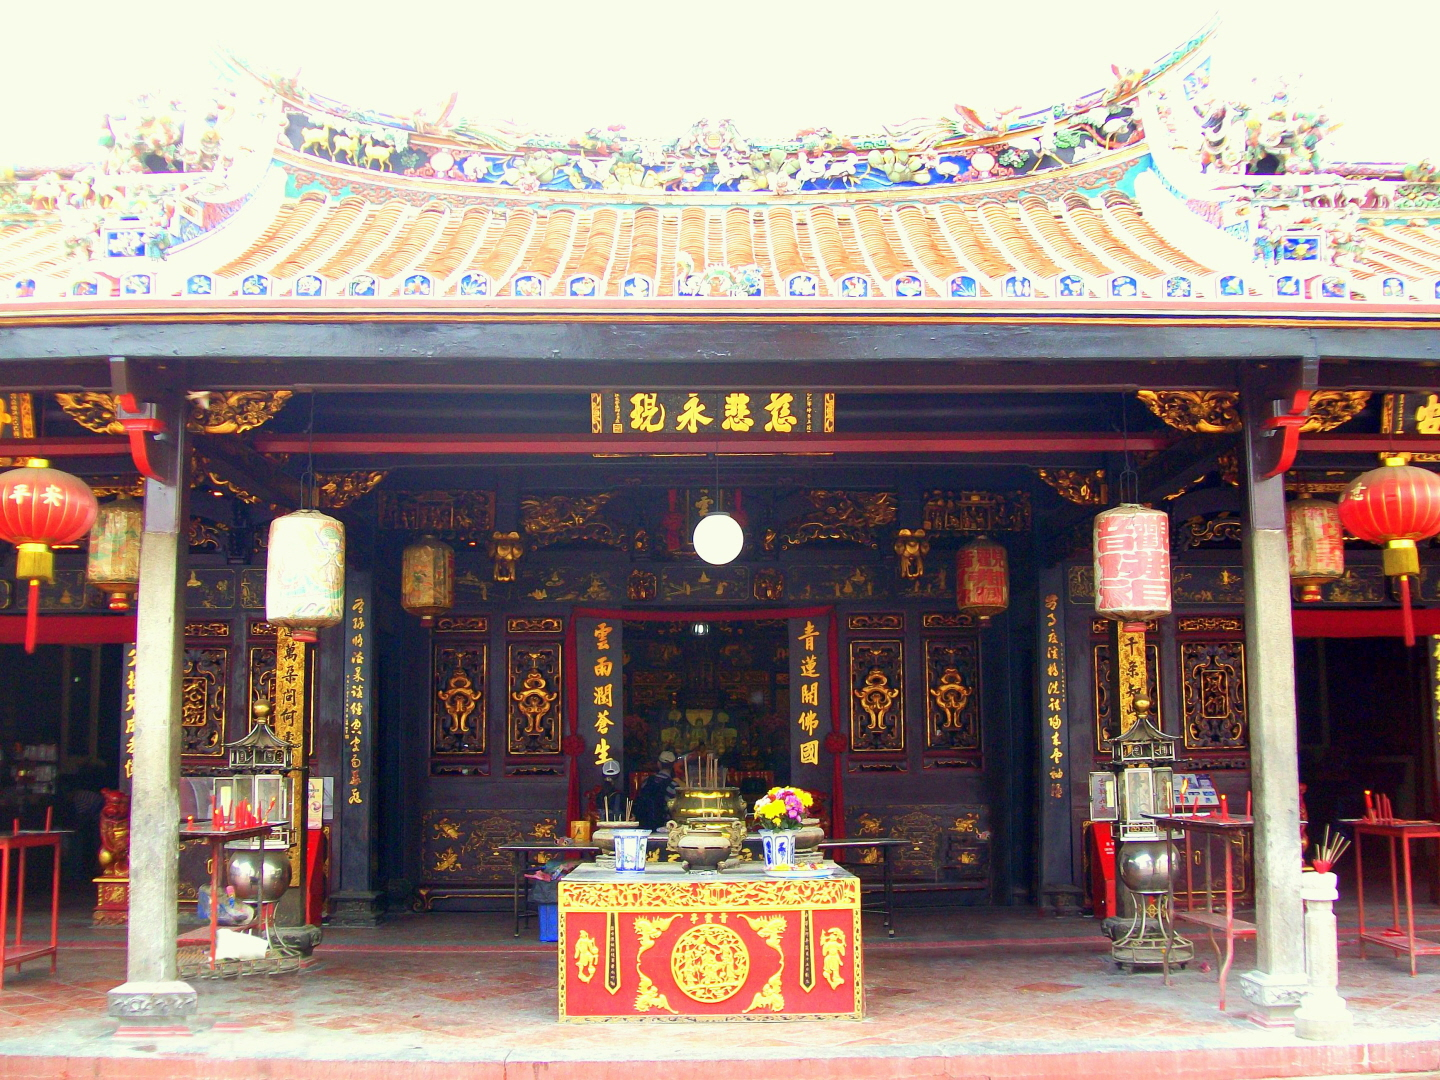 Cheng Hoon Teng Temple - 1600's Traditional Chinese -UNESCO AWARD for Restoration - Malaka